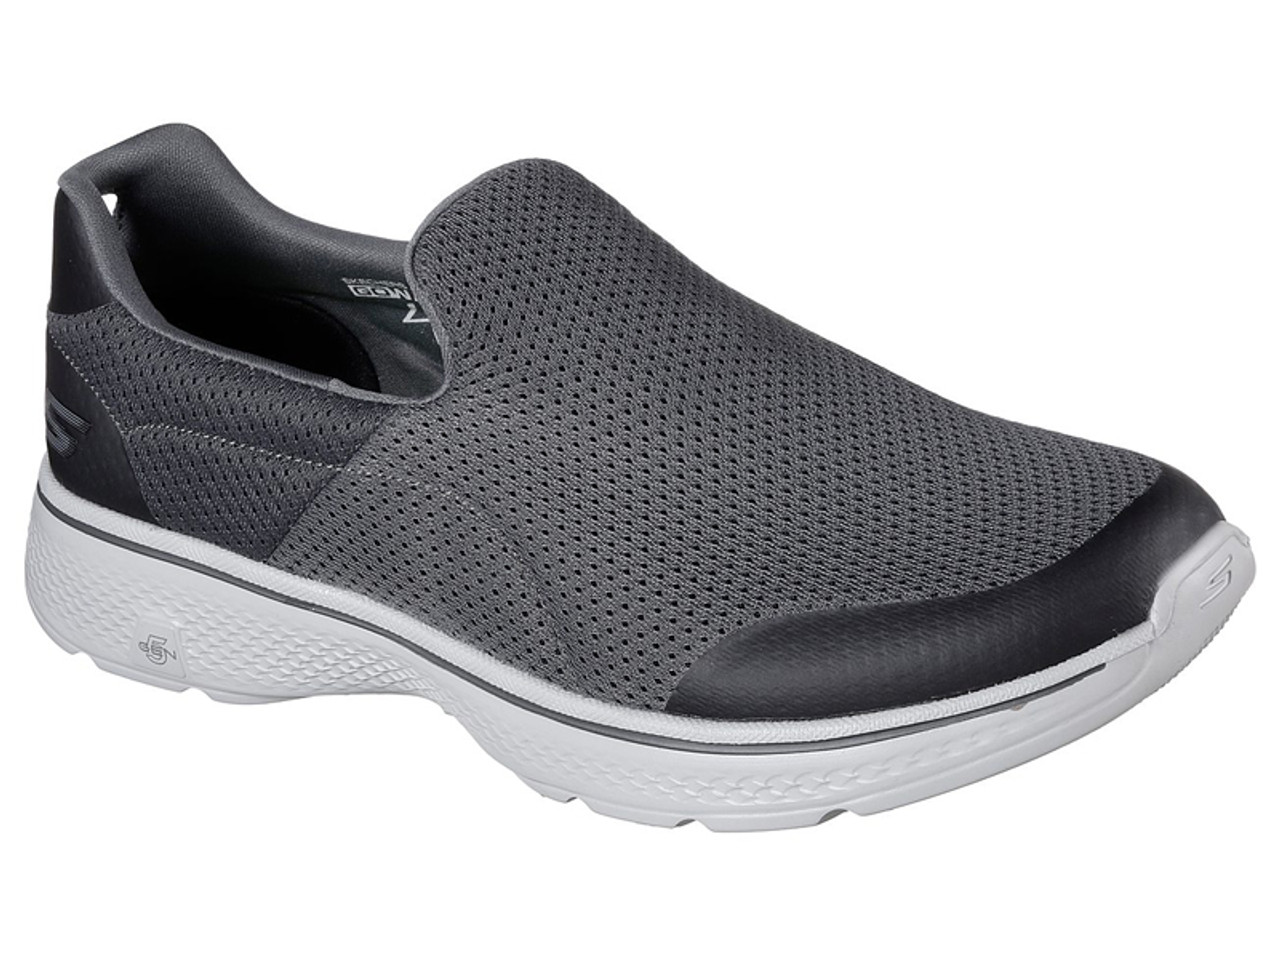 order best supplier running shoes Skechers Go Walk 4 Incredible Shoes - Charcoal